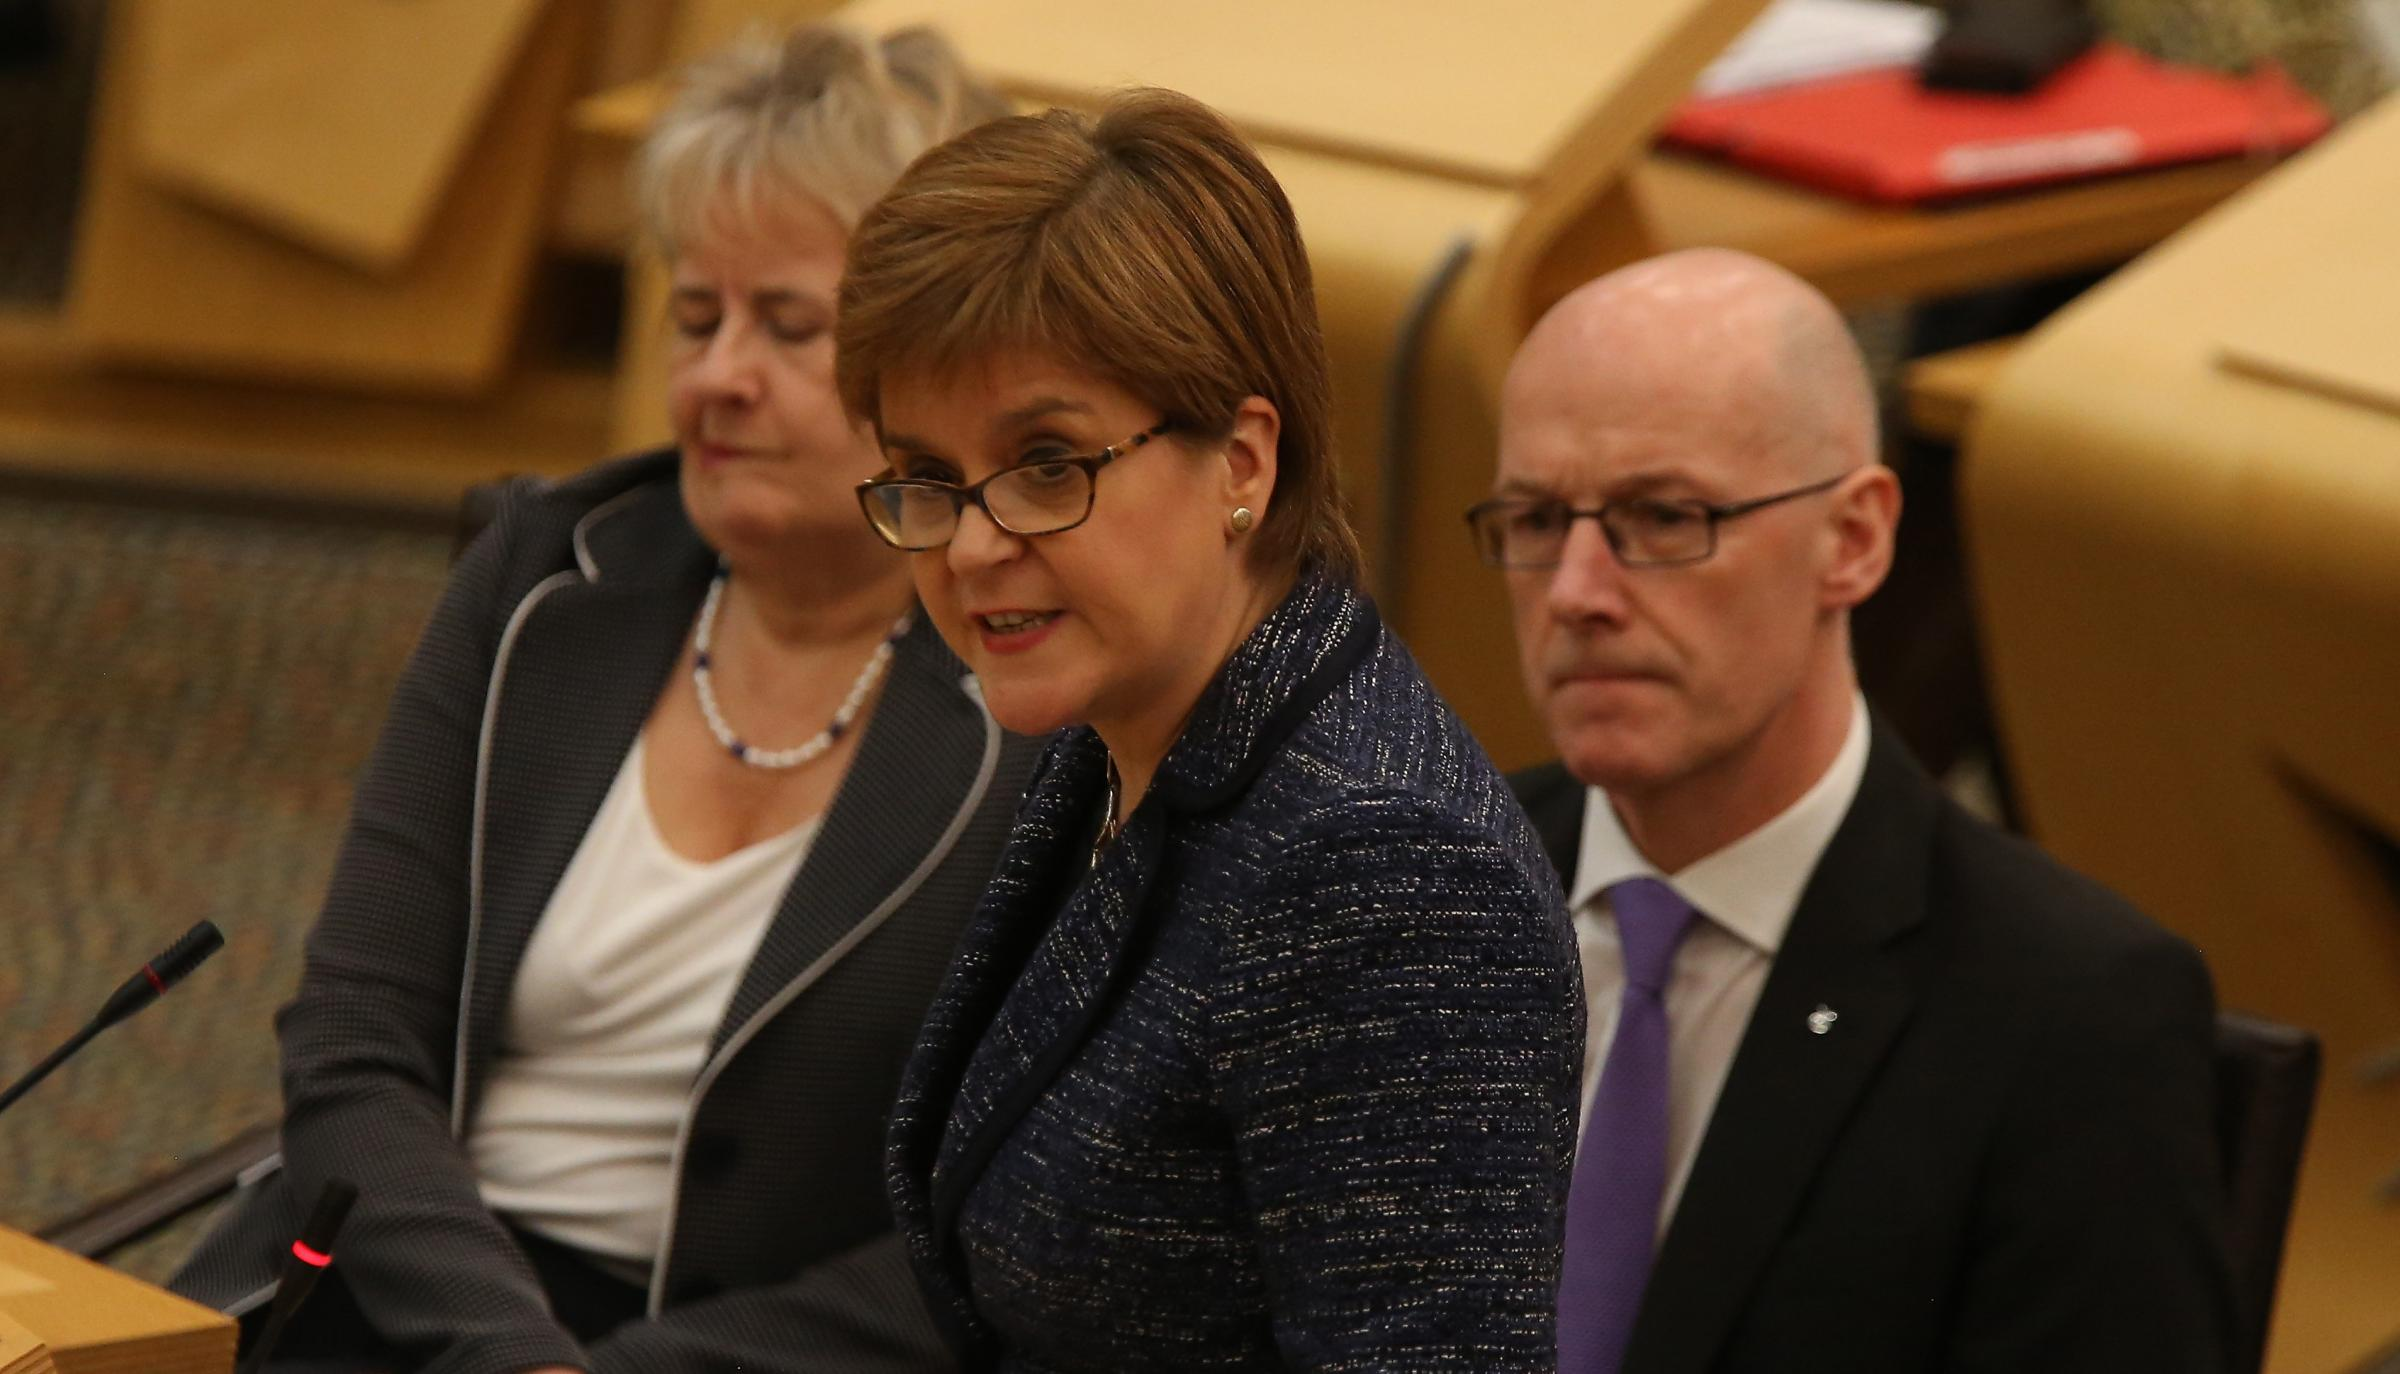 Nicola  Sturgeon was speaking during FMQs